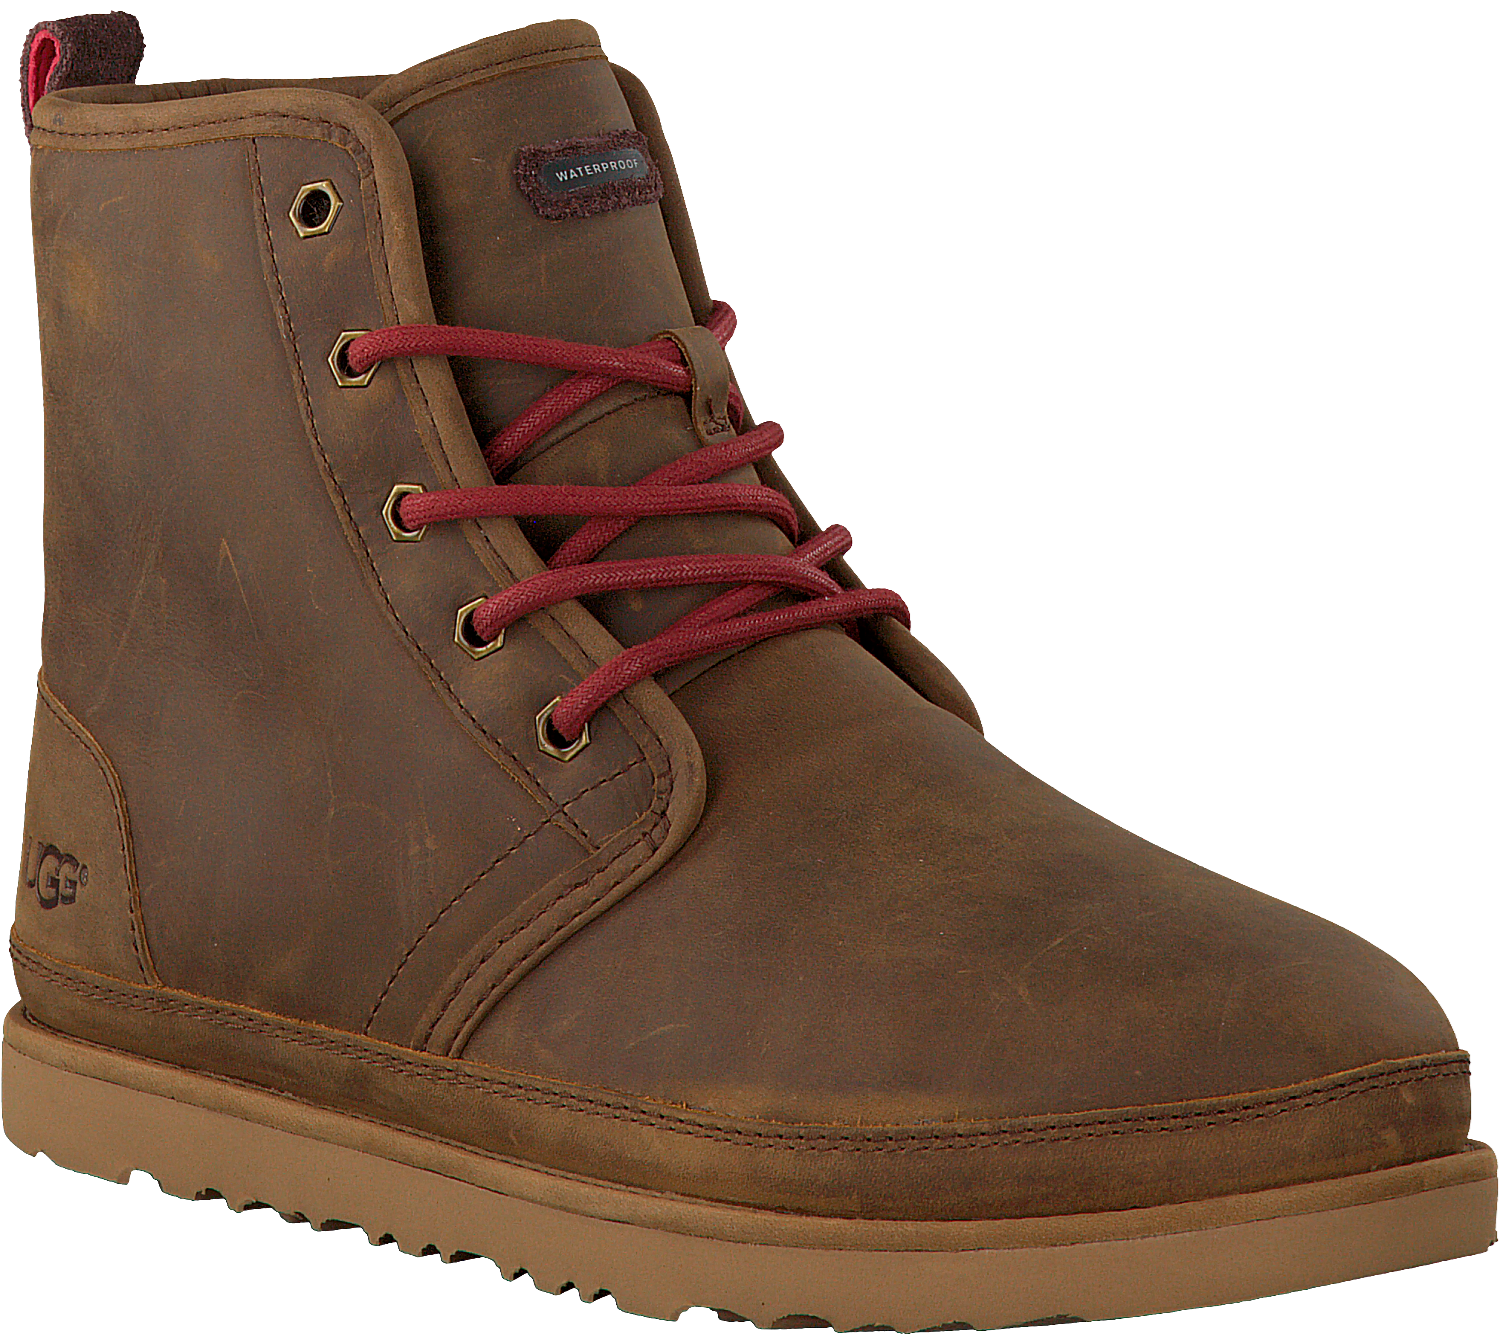 cdd71d520a Braune UGG Ankle Boots HARKLEY WATERPROOF - large. Next